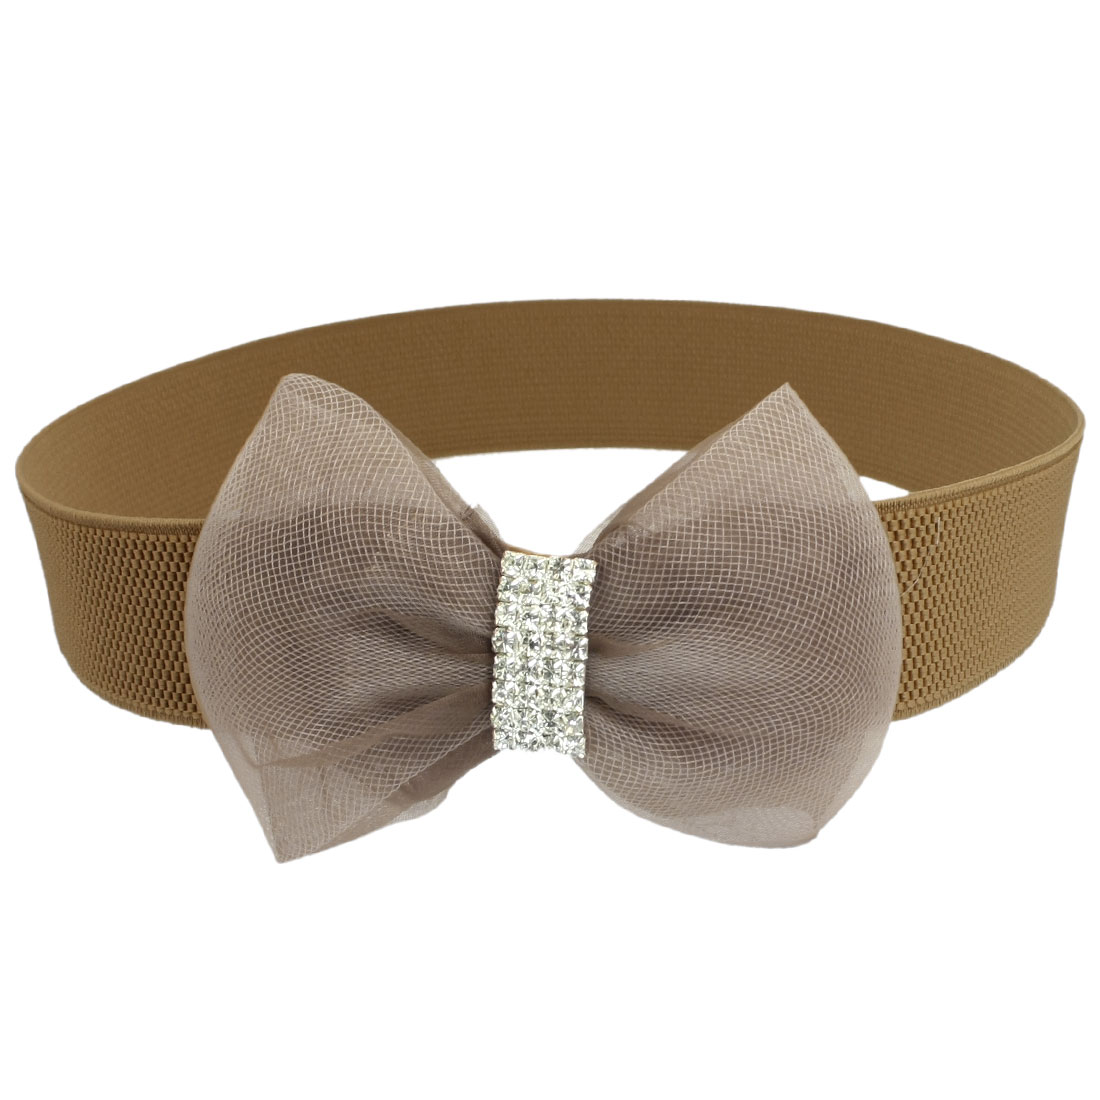 Lady Rhinestone Accent Gauze Bowknot Decor Elastic Cinch Waist Belt Brown